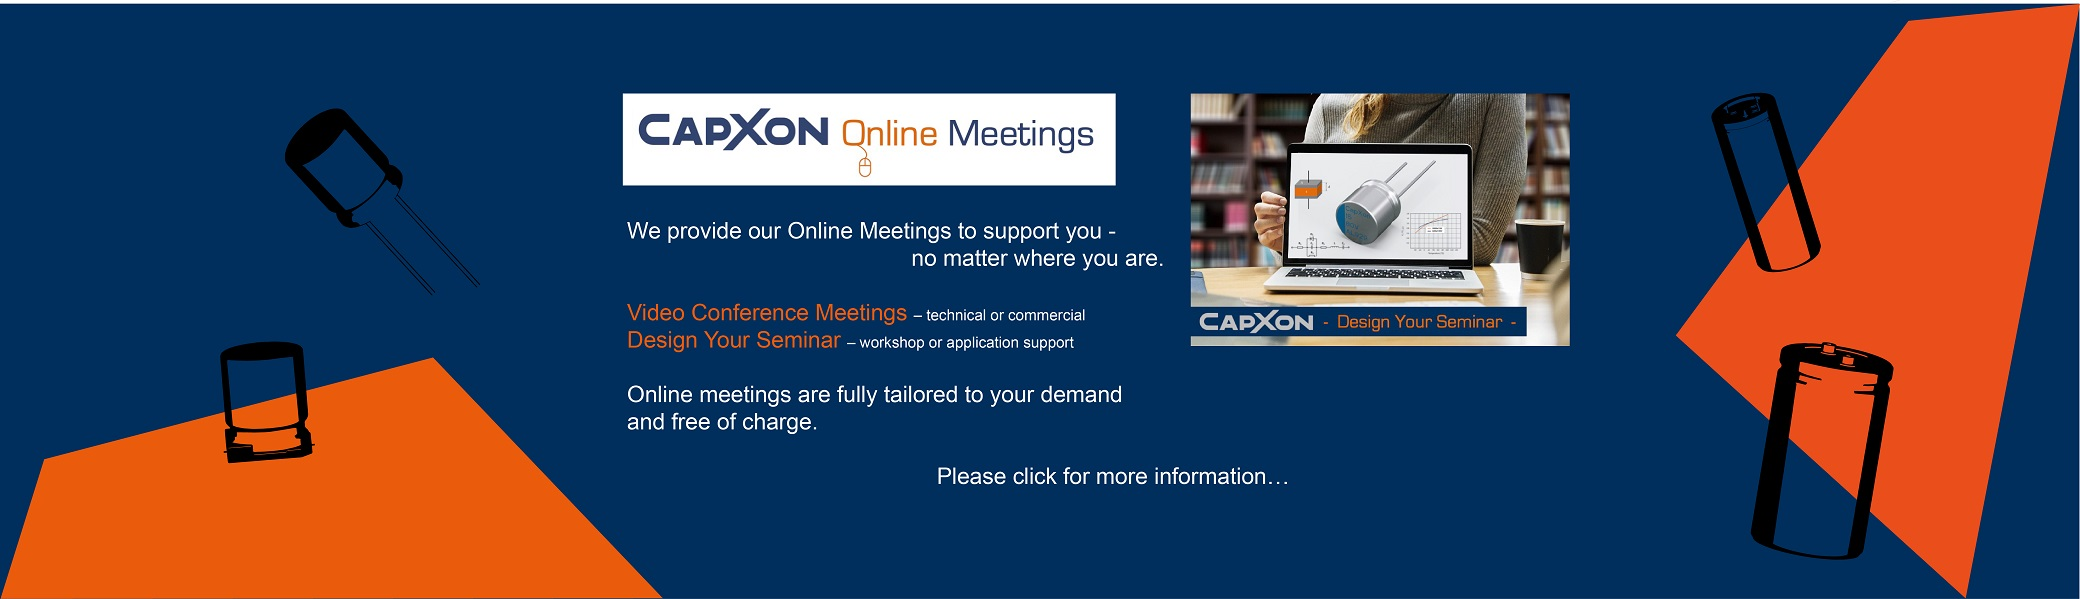 Capxon Online Meeting